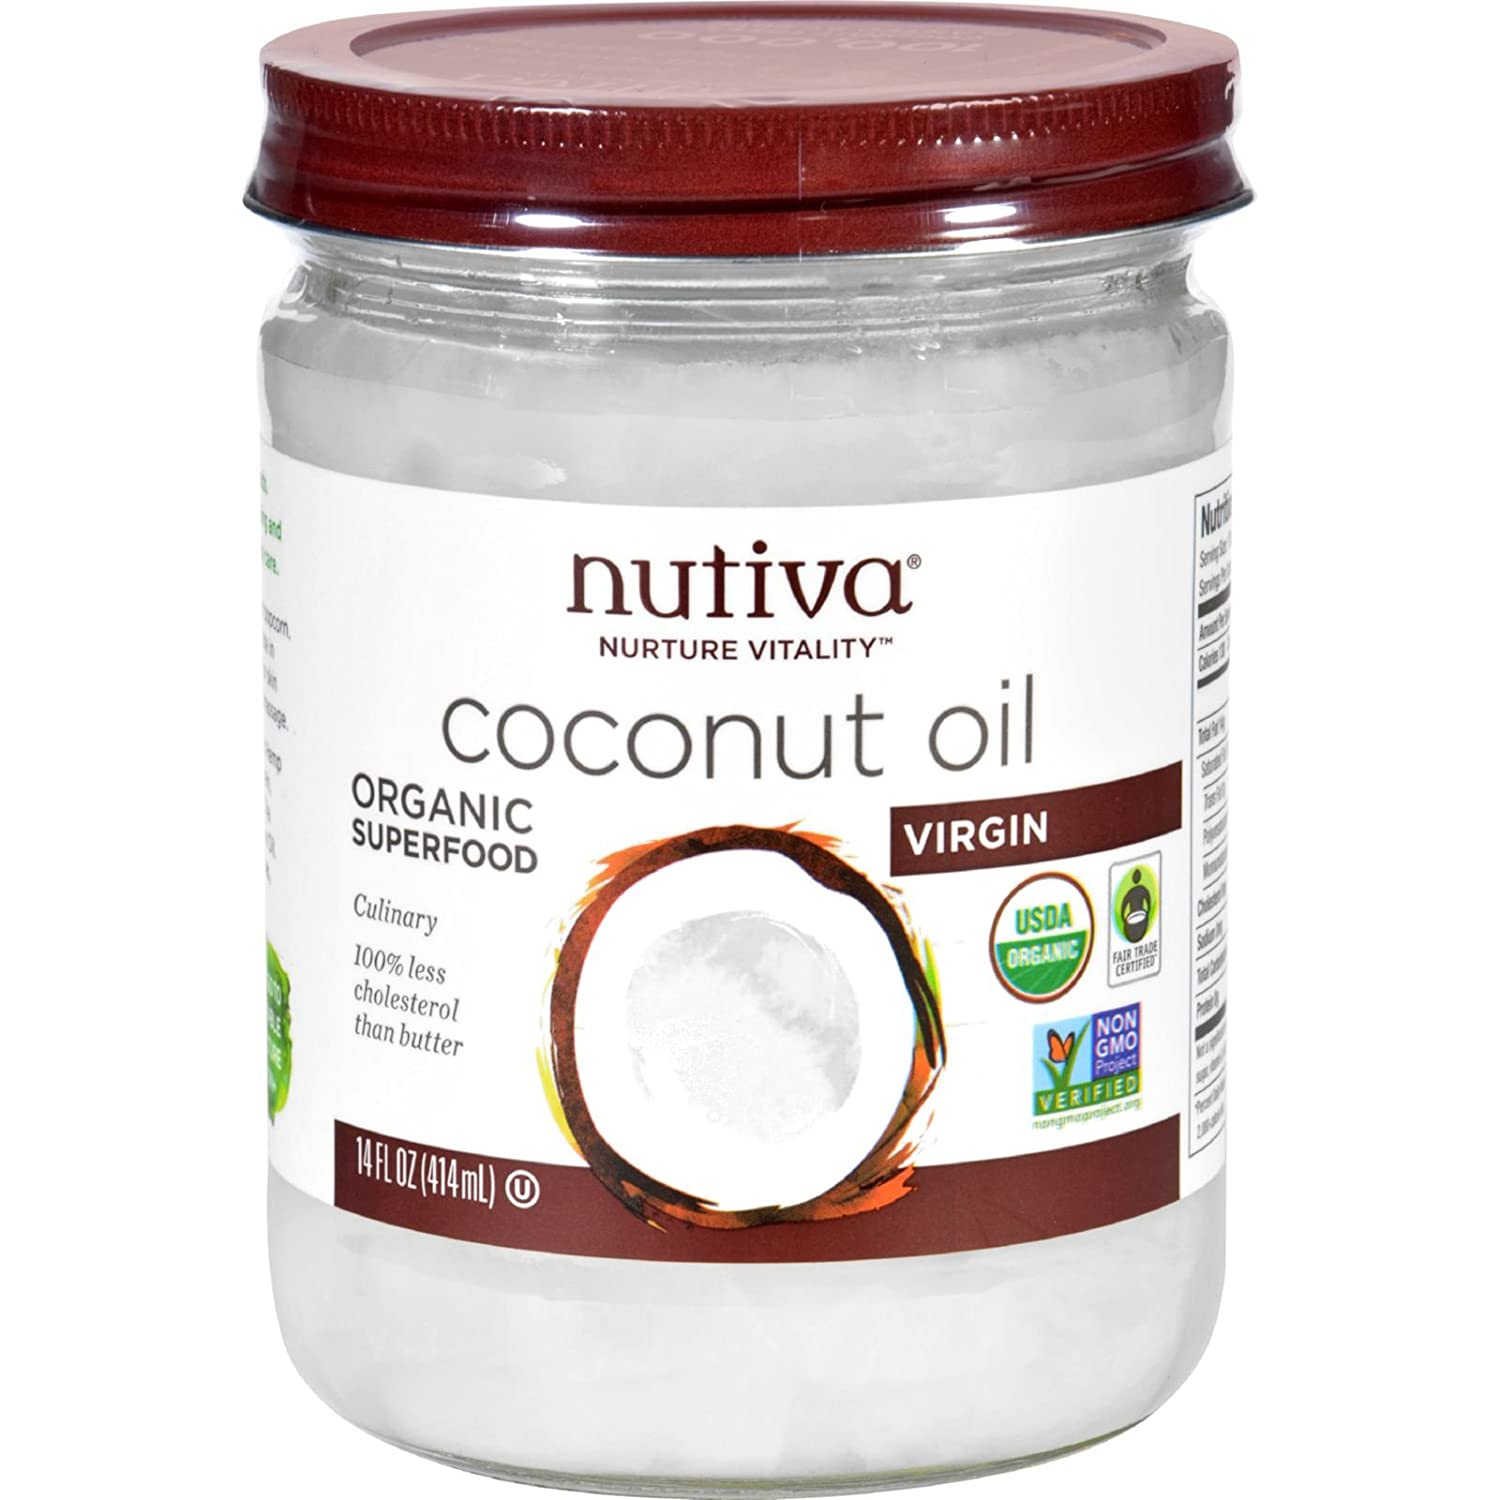 Nutiva Coconut Oil, 14 Ounce